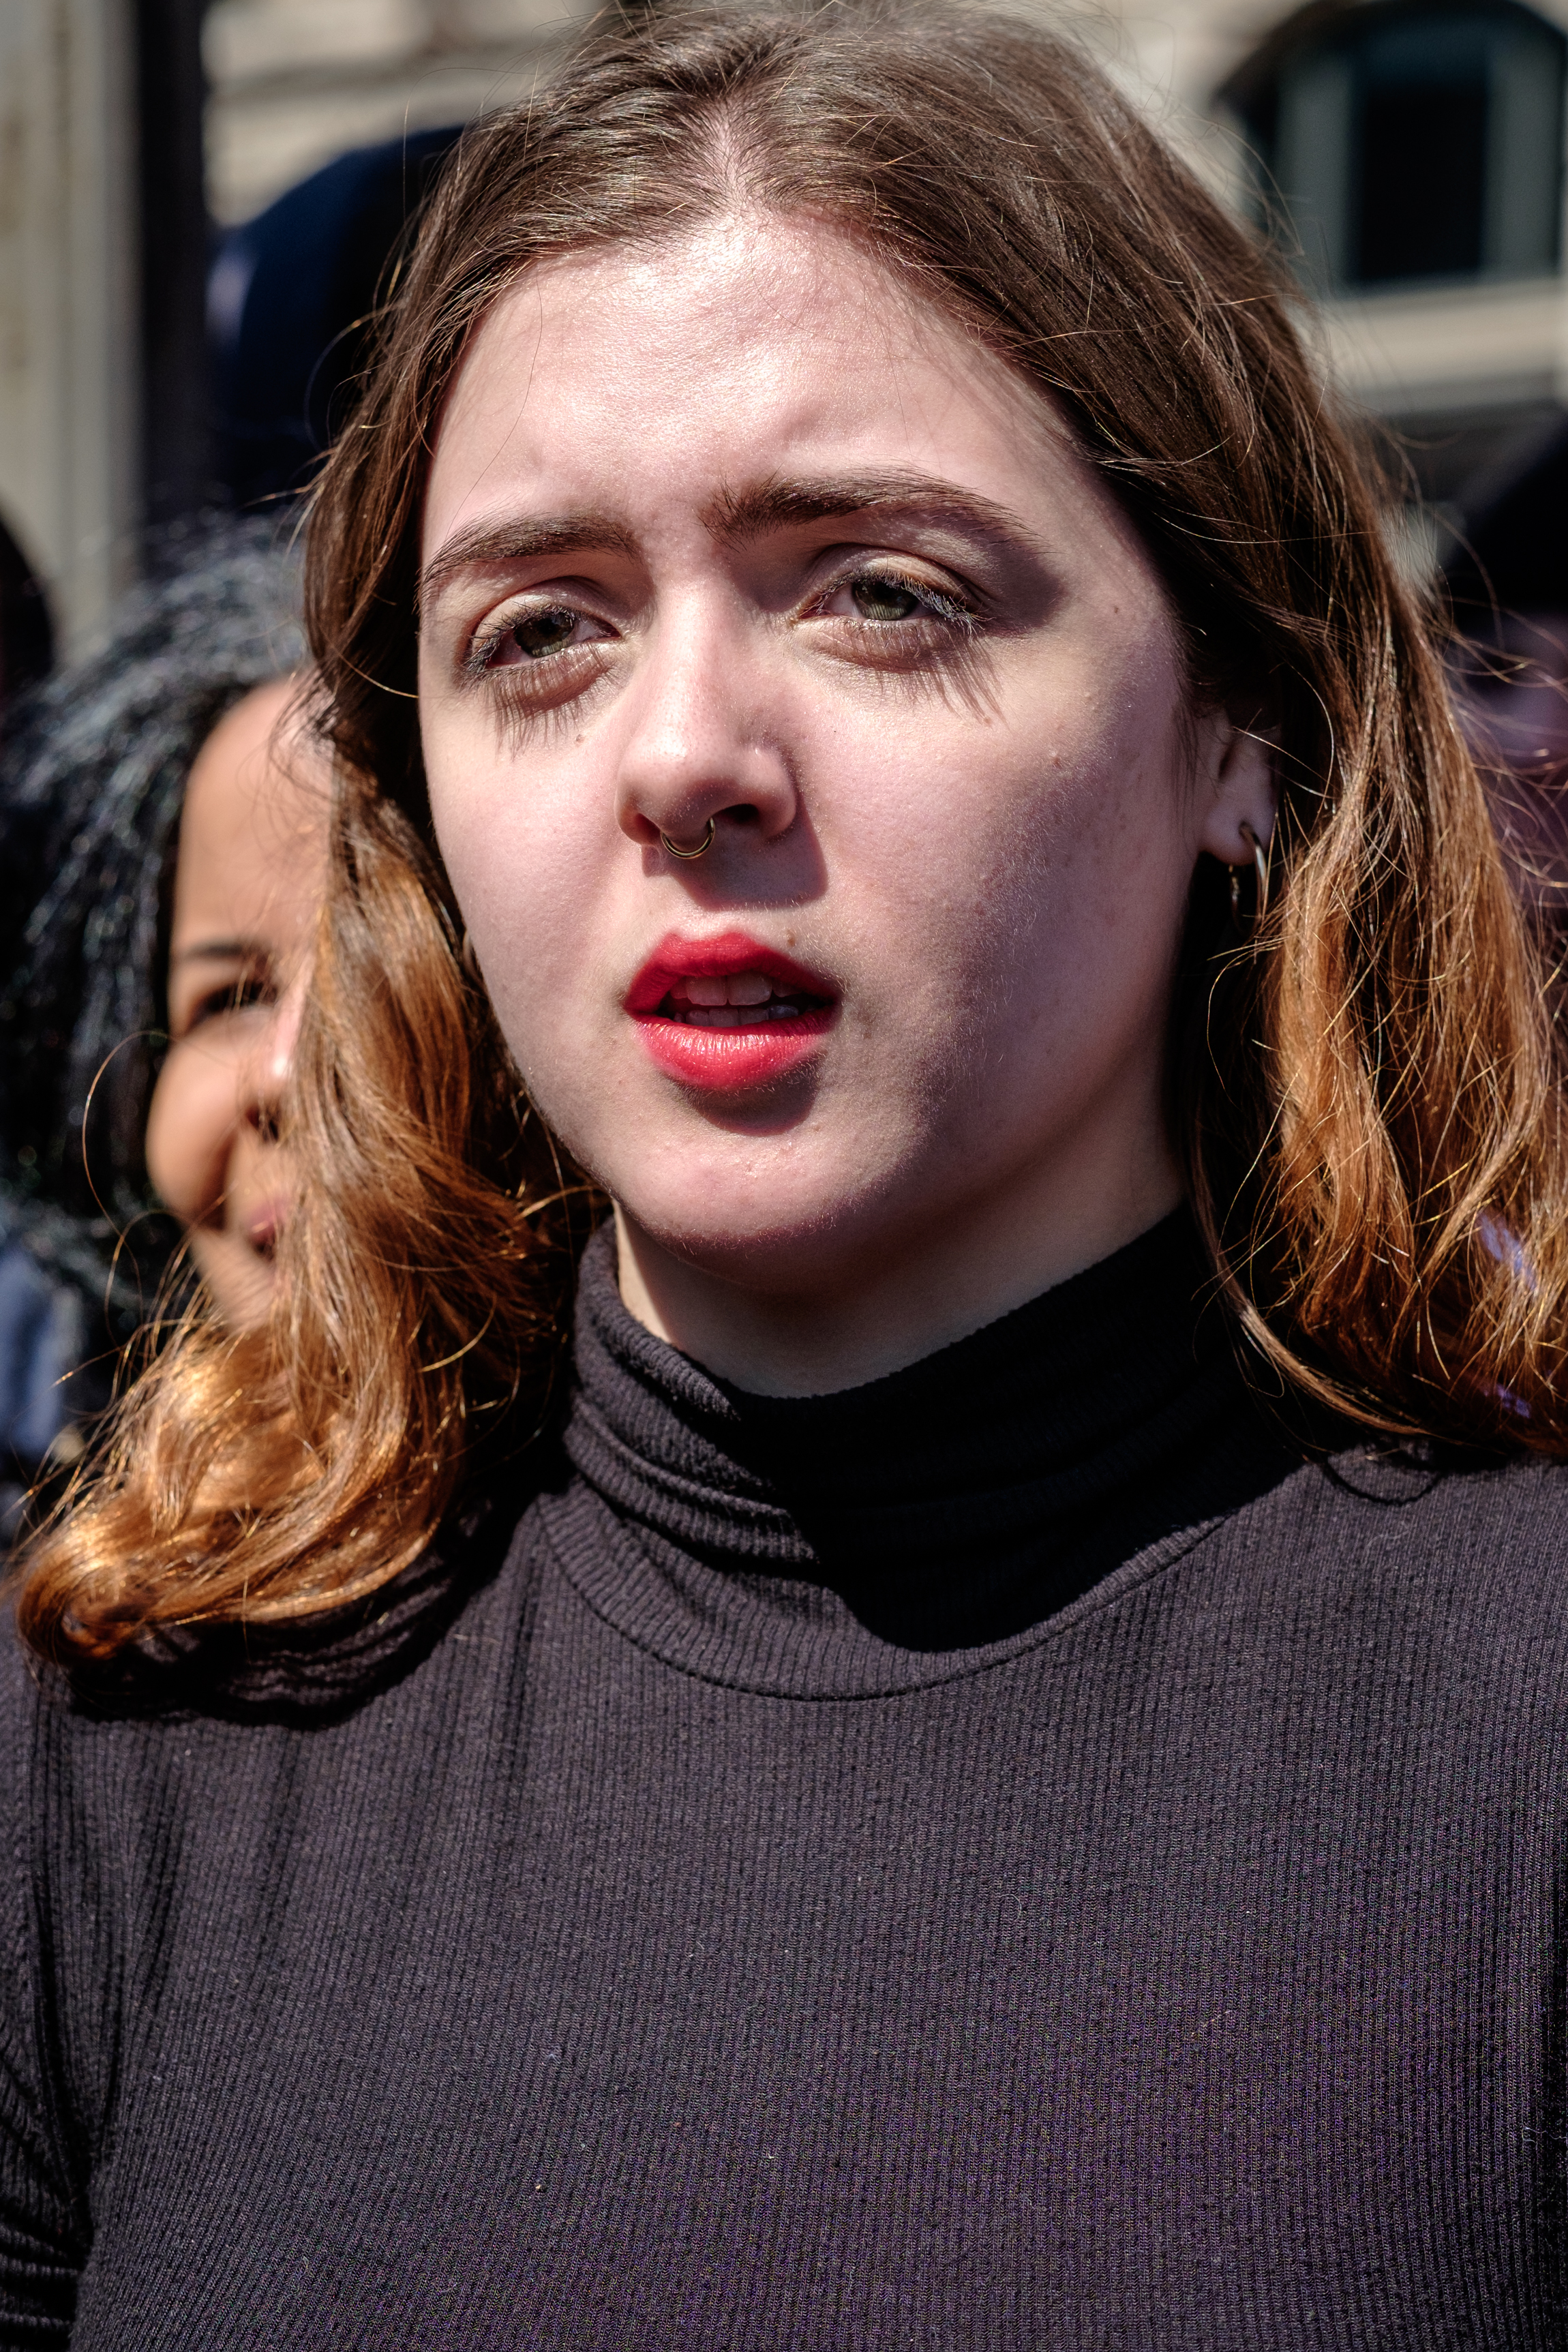 "Kestrel Coffee, a 19 year old college student from Falls Church, VA, takes part in the March for Our Lives Rally on Saturday, March 24, 2018 in Washington, DC. She had this to say, ""I'm a student. You know, I'm a college student, but I'm a student. It breaks my heart every single time. I want to be an educator, and I want to be an influencer and I feel like there's no way we can change the world unless we all come together and work hard at it. I mean, this is the only way to get things done. And, you know, I feel absolutely honored to be able to take part. And as a young person I feel like it's so easy to be overlooked but no more."" March For Our Lives is a student-led movement   to end gun violence in the United States. Hundreds of thousands of people took to the streets of Washington, DC to demand that peoples' lives and safety become a priority and to put an end to gun violence in communities and schools immediately. Over 800 sibling marches took place across the U.S. and internationally."